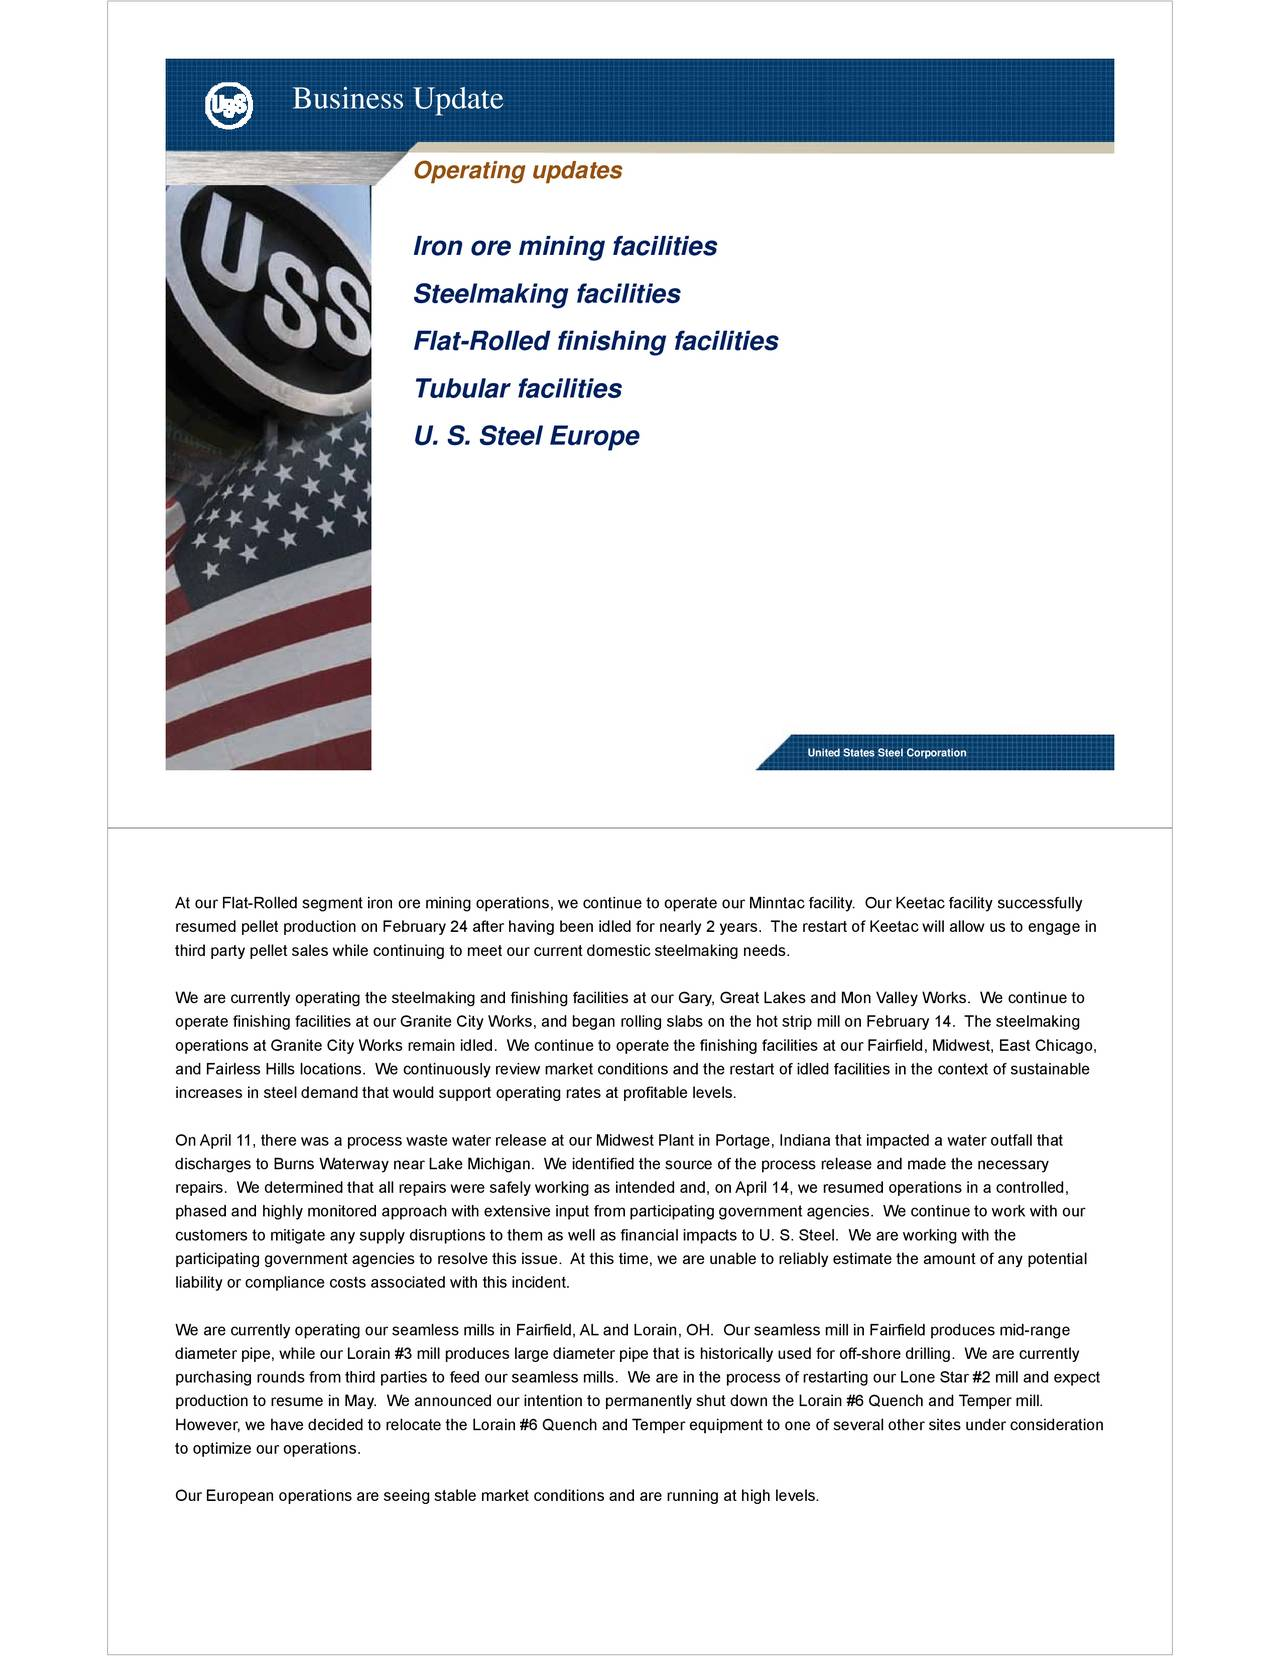 United States Steel Corporation 2017 Q1 Results